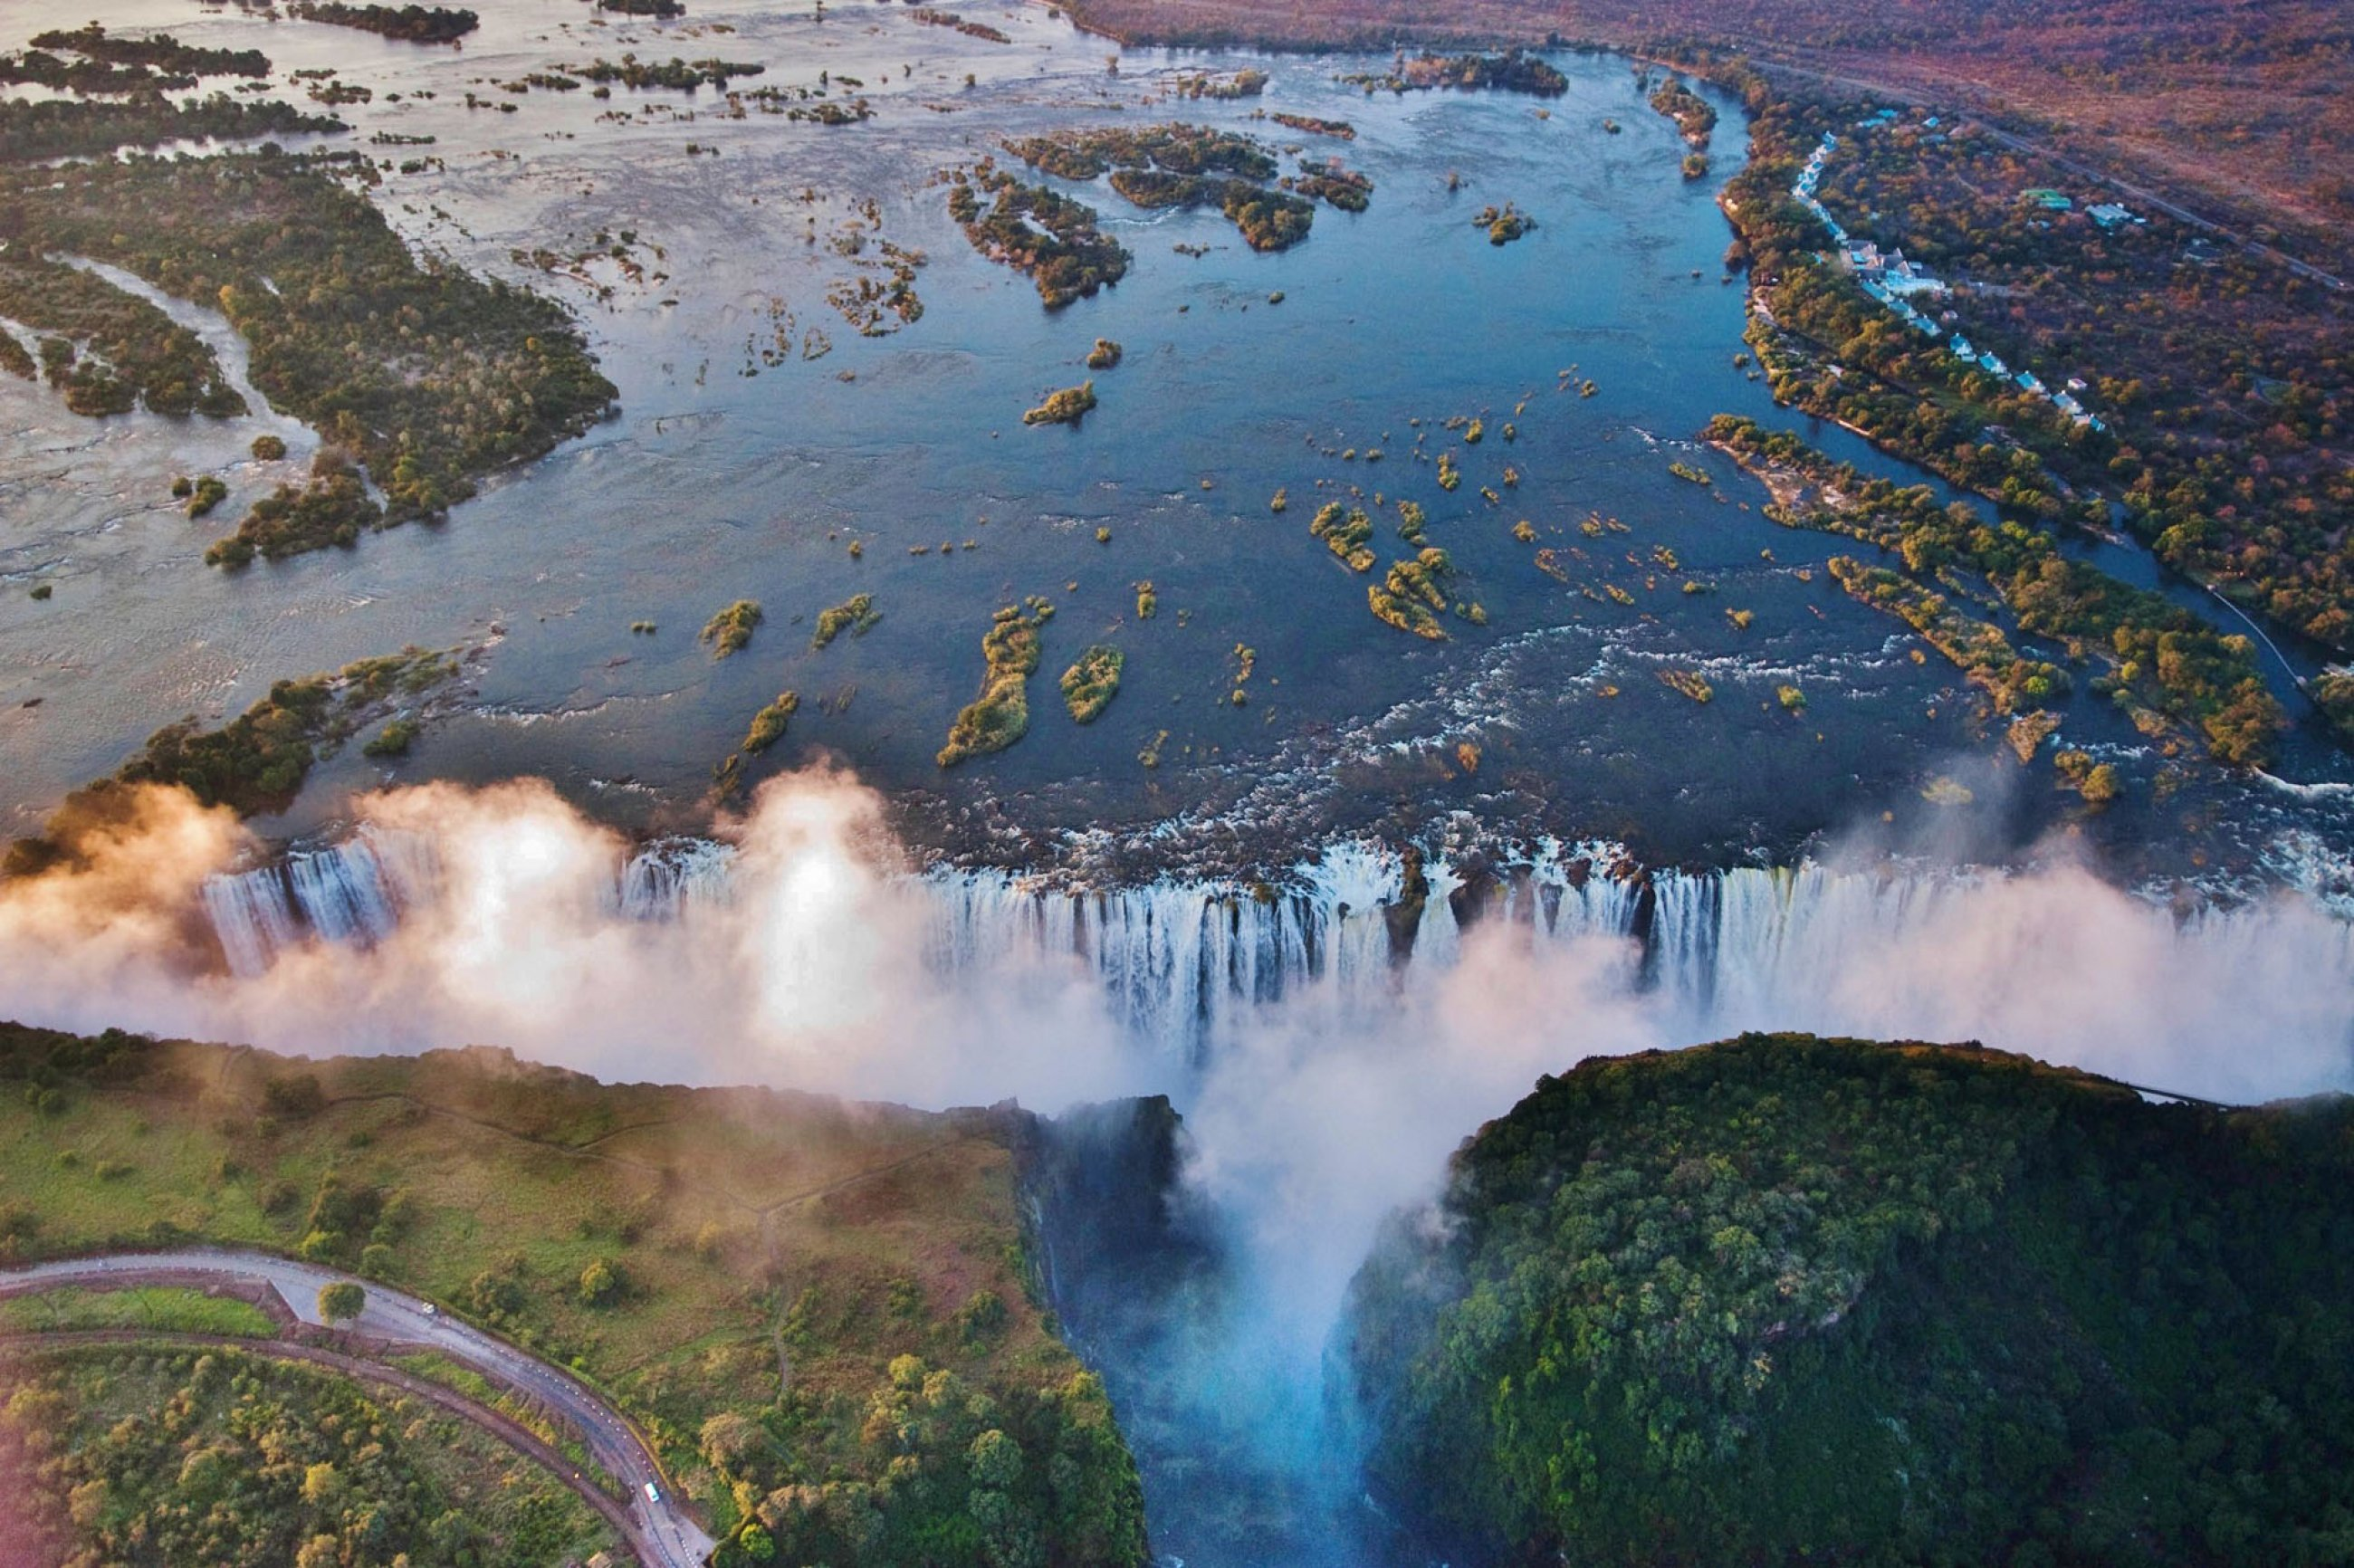 https://bubo.sk/uploads/galleries/7504/victoria-falls-2.jpg